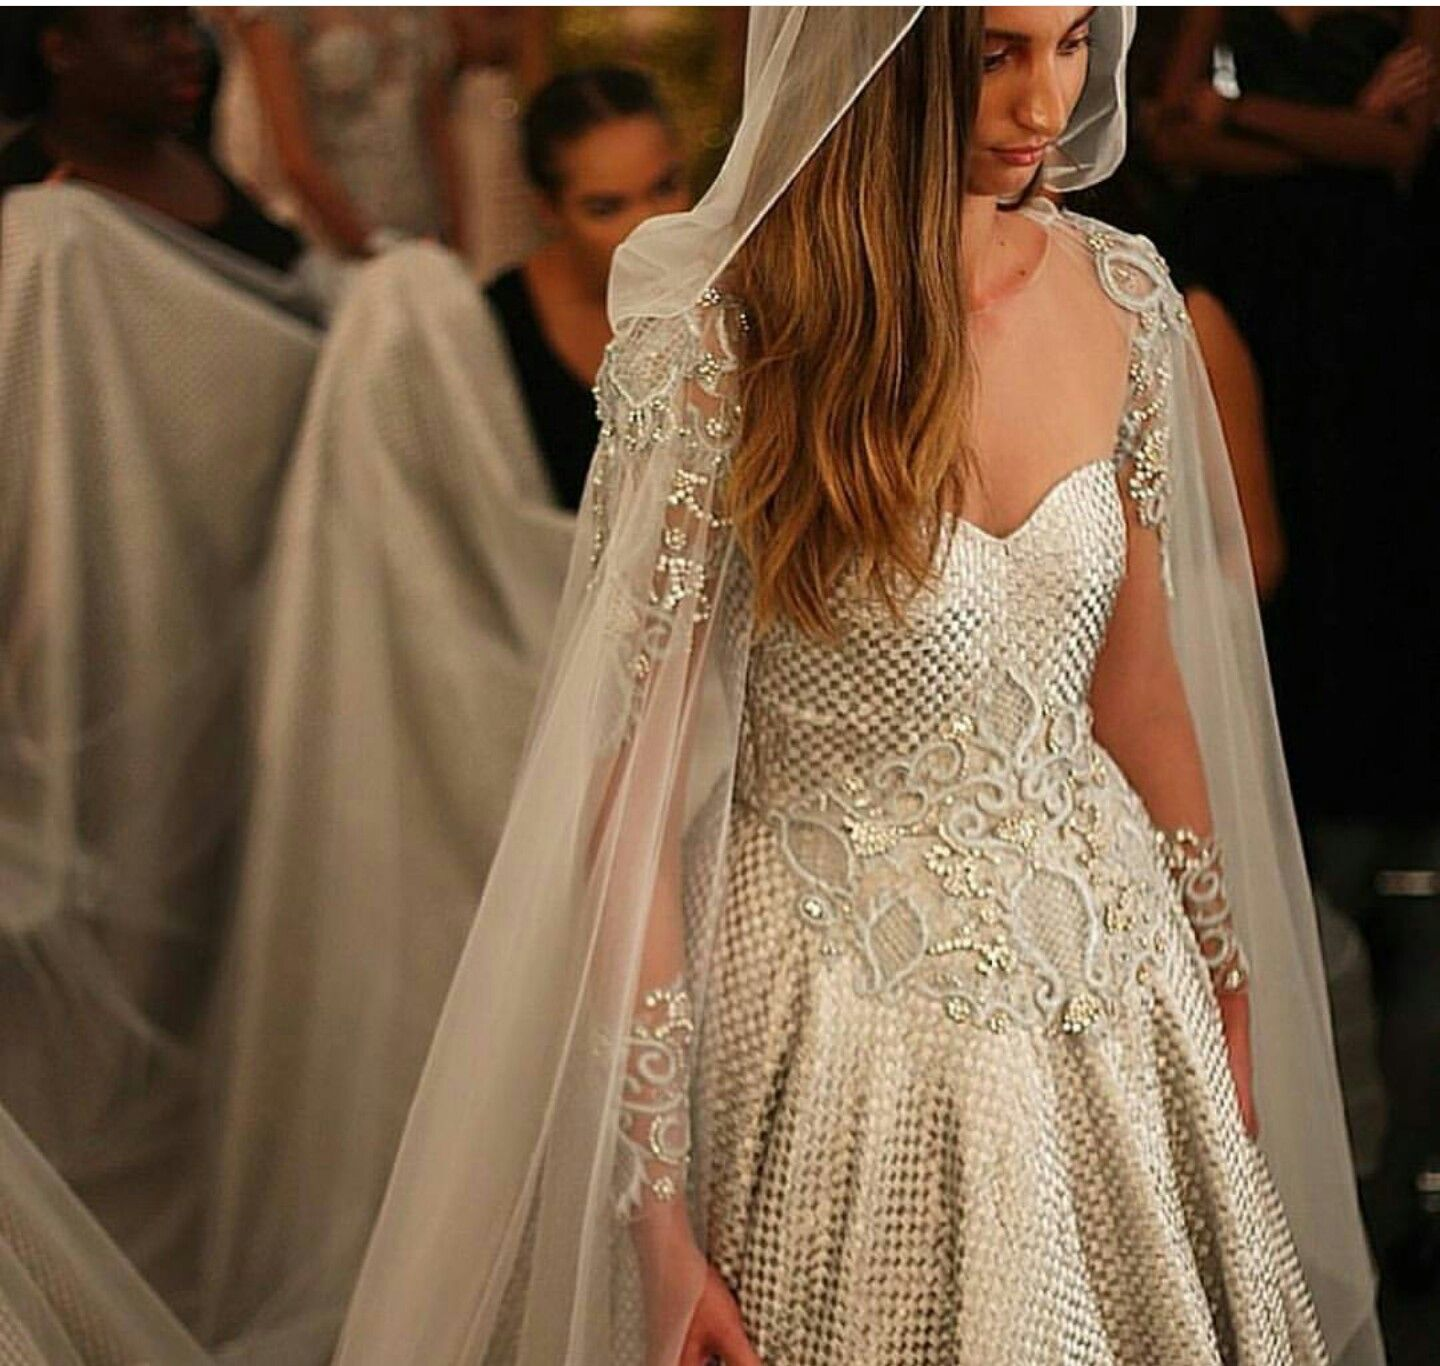 The Gown S A Little Odd But I Like The Cape Veil How Amazing Is This Cape Like A Game Of Thrones Theme Medieval Wedding Dress Wedding Cape Bridal Gowns